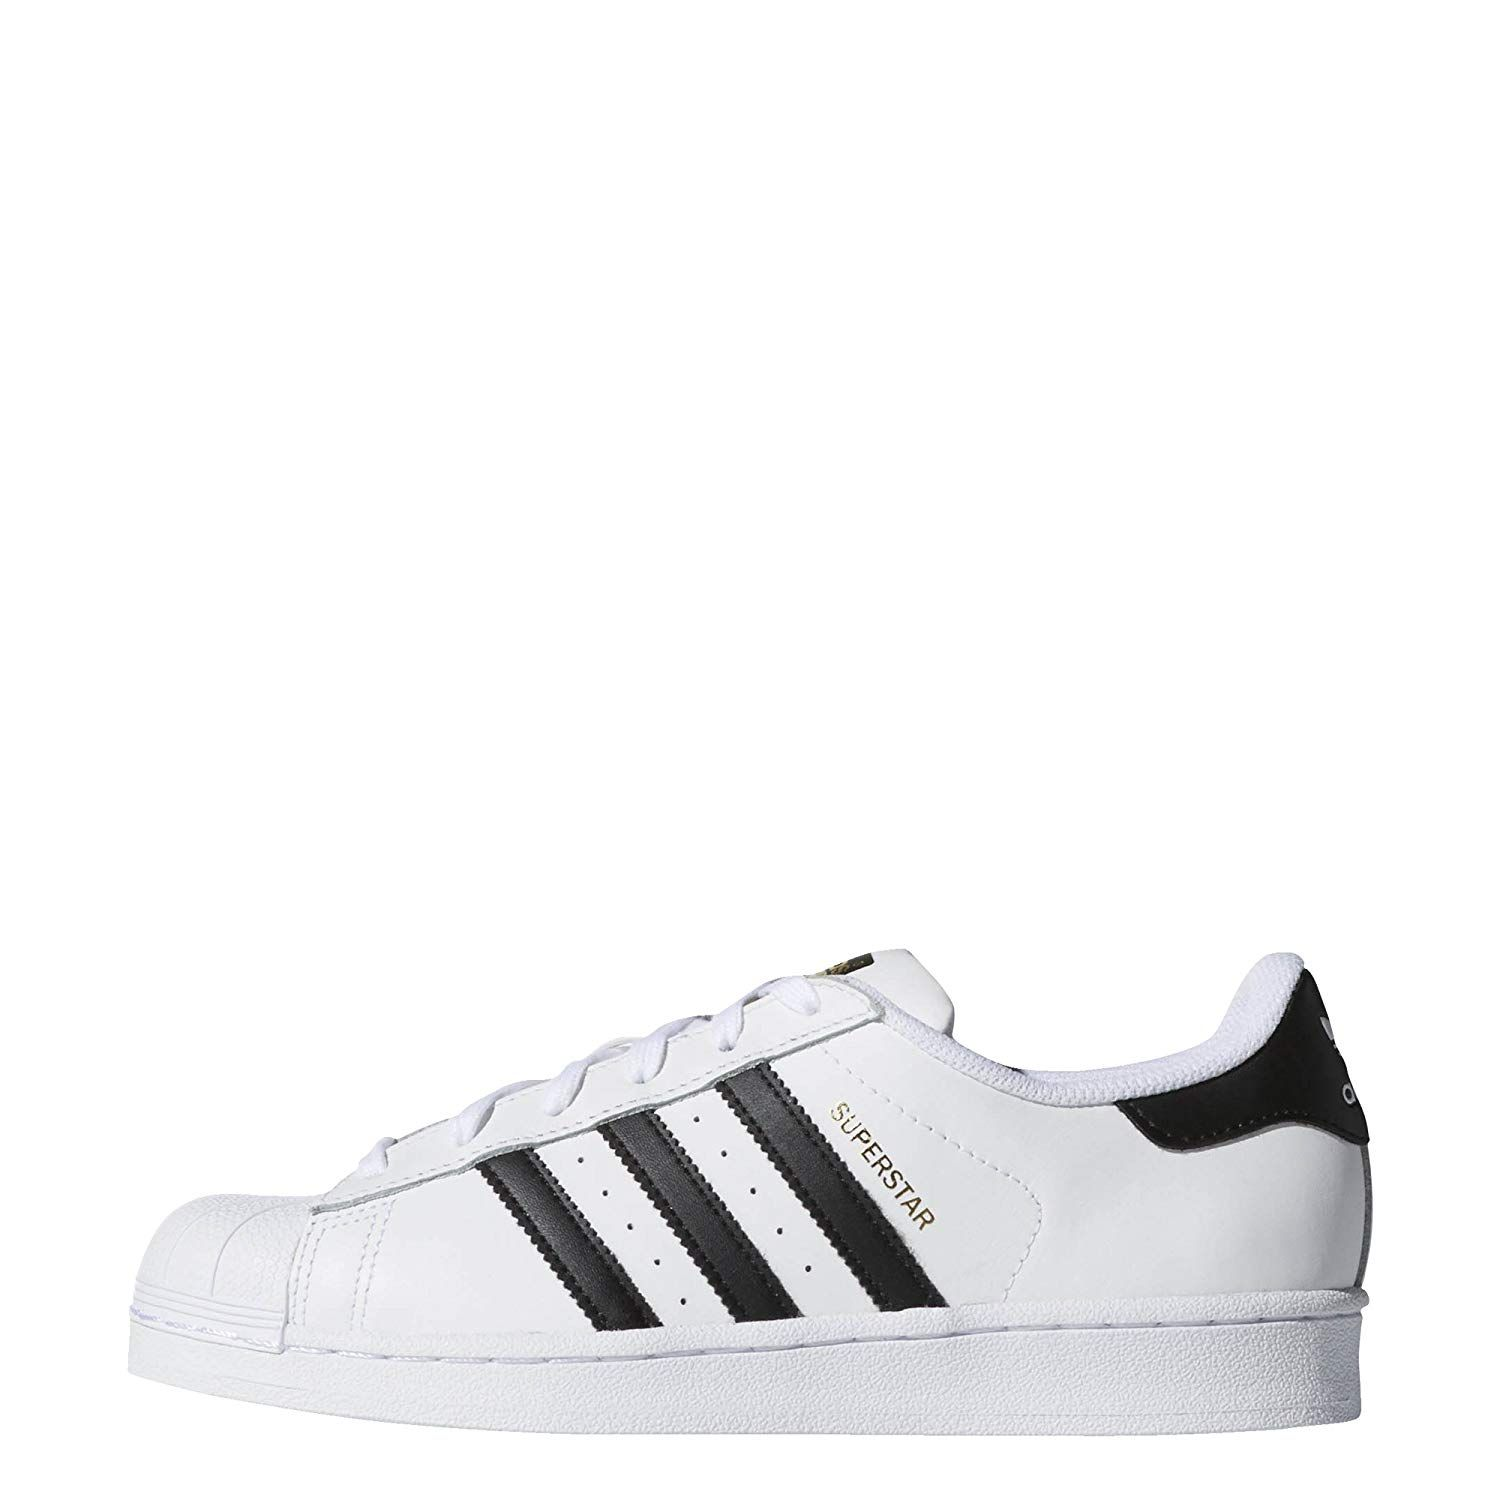 check out 653b0 e9d07 Amazon.com   adidas Originals Women s Superstar Shoes Running   Fashion  Sneakers